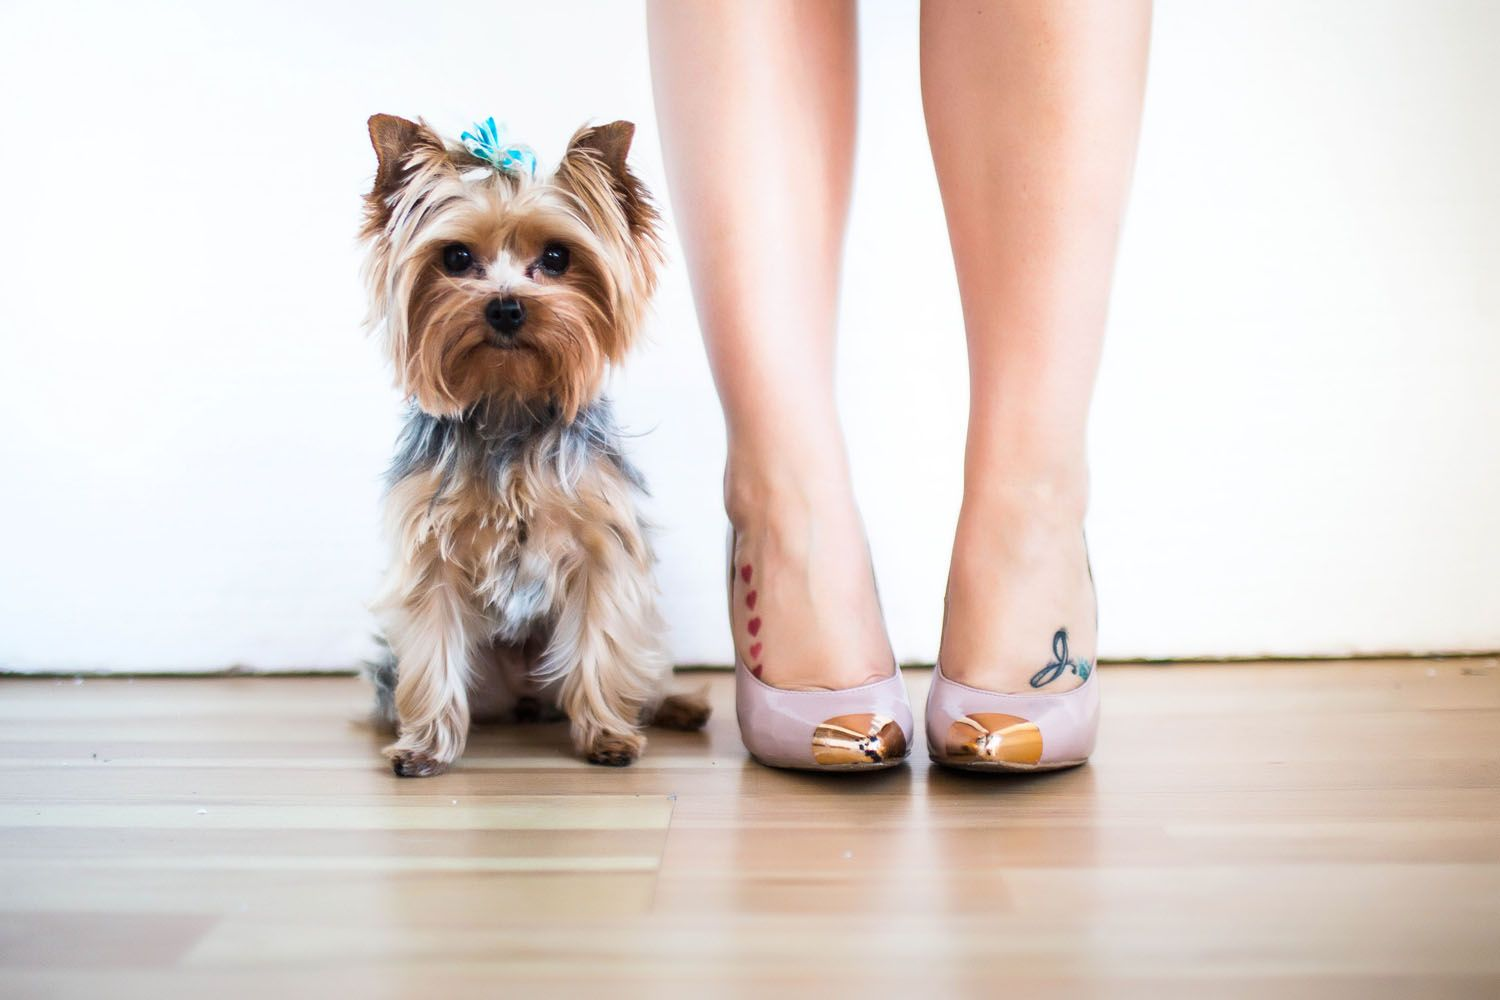 Sweetest, spunkiest, most perfect Yorkie on the block and some funky little foot tats, all dressed up. ajaynewrites.com coming soon! (For design/color reference: electric blue, gray, nude, gold)